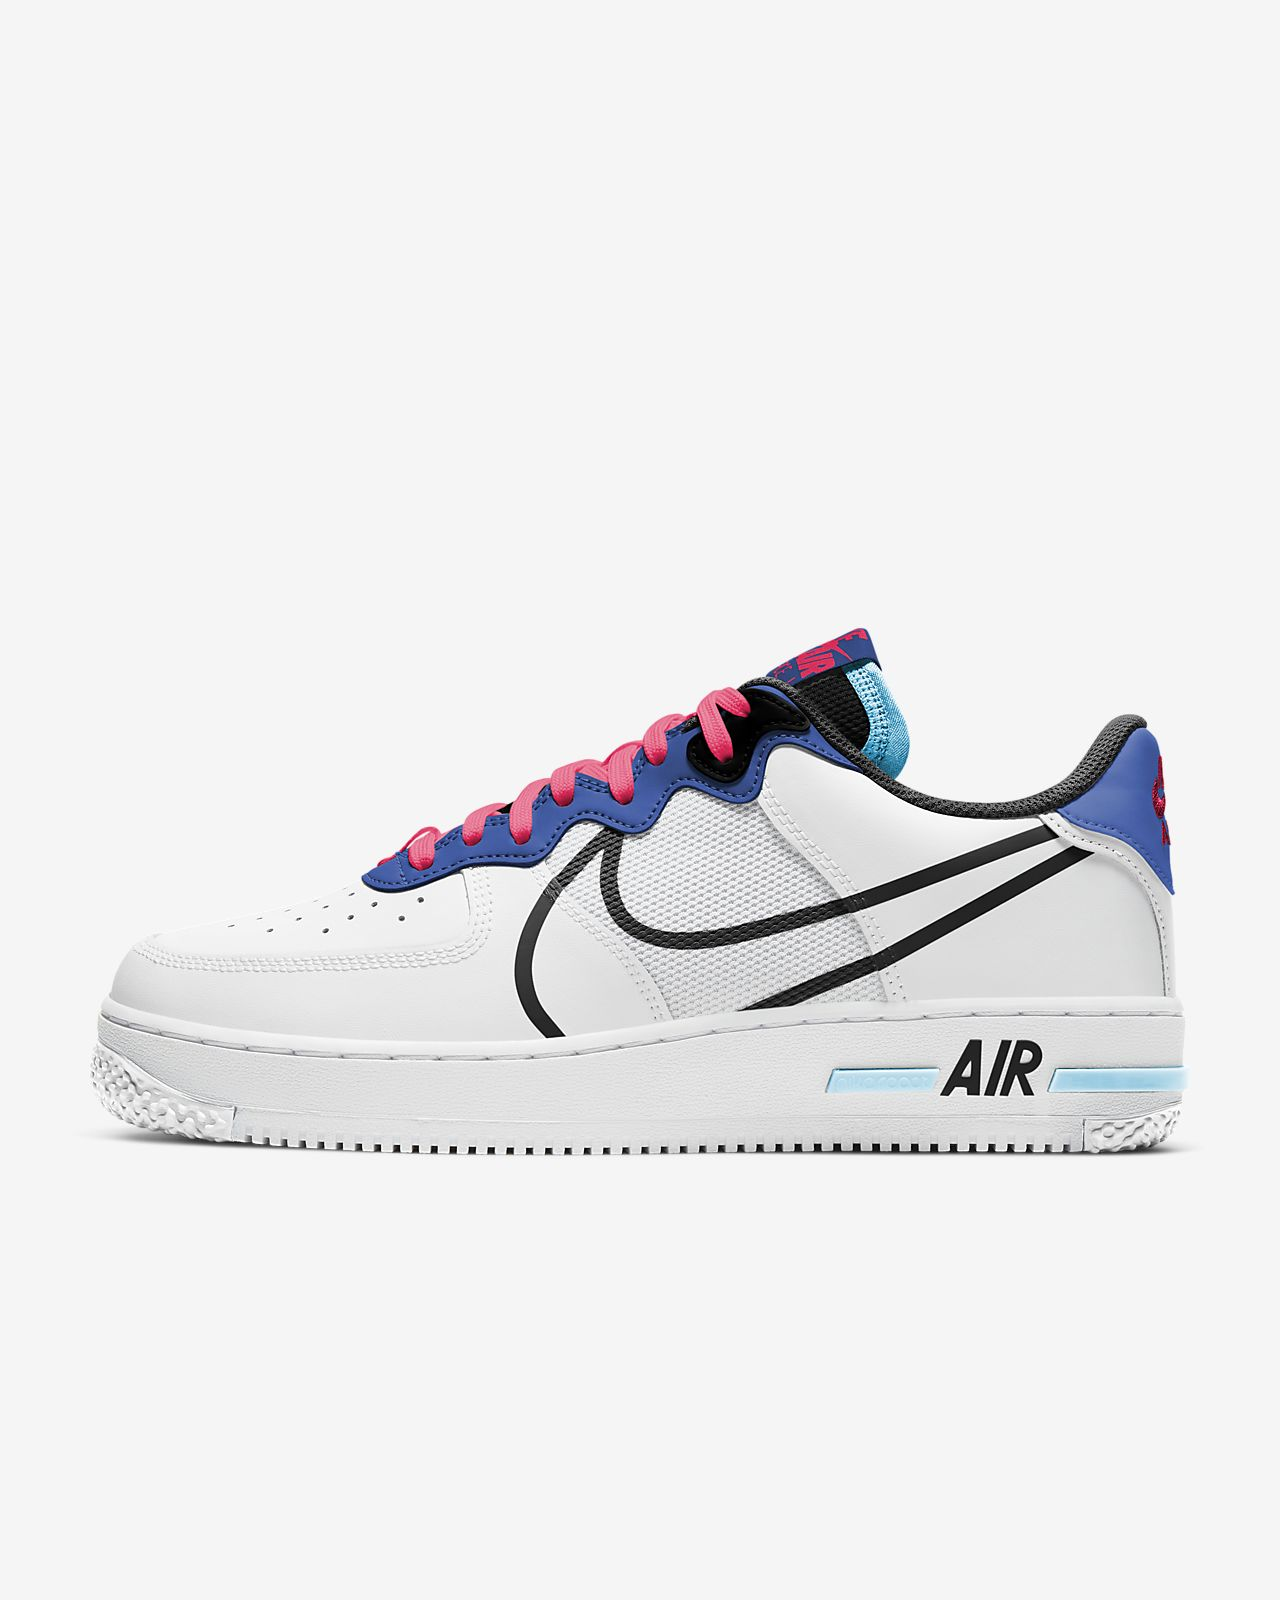 Nike Air Force 1 Low LTD LBJ Irish Retro | Kicks Box